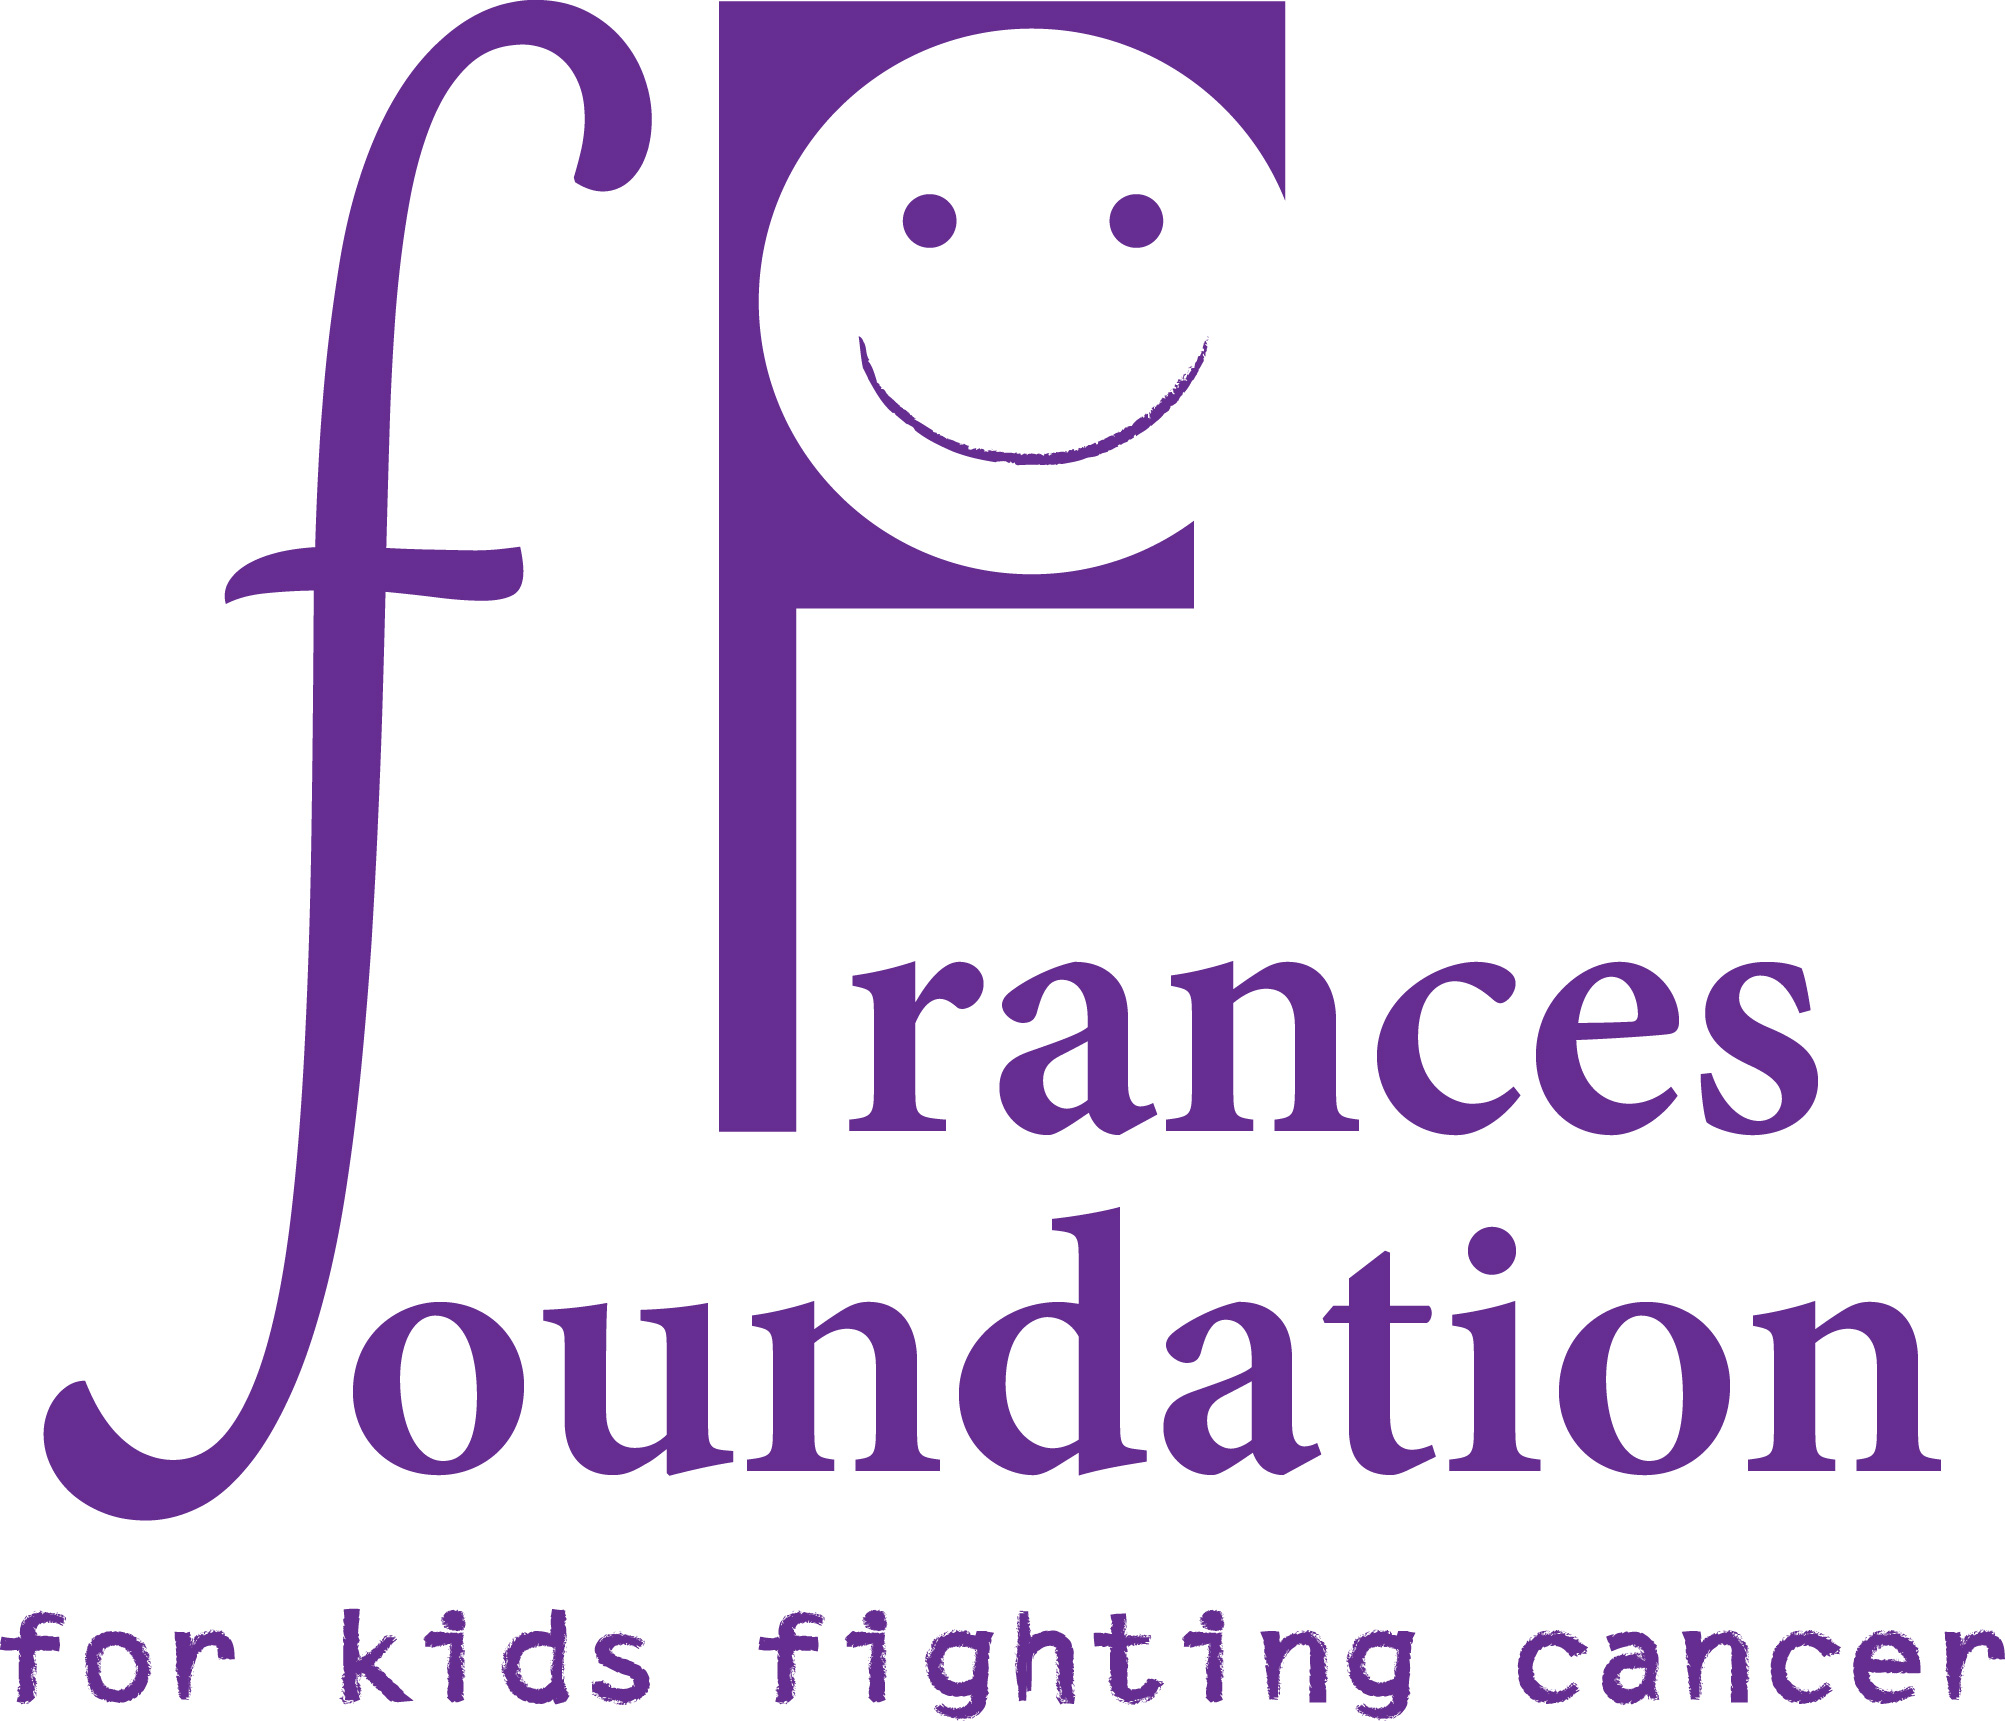 FRANCES FOUNDATION FOR KIDS FIGHTING CANCER INC